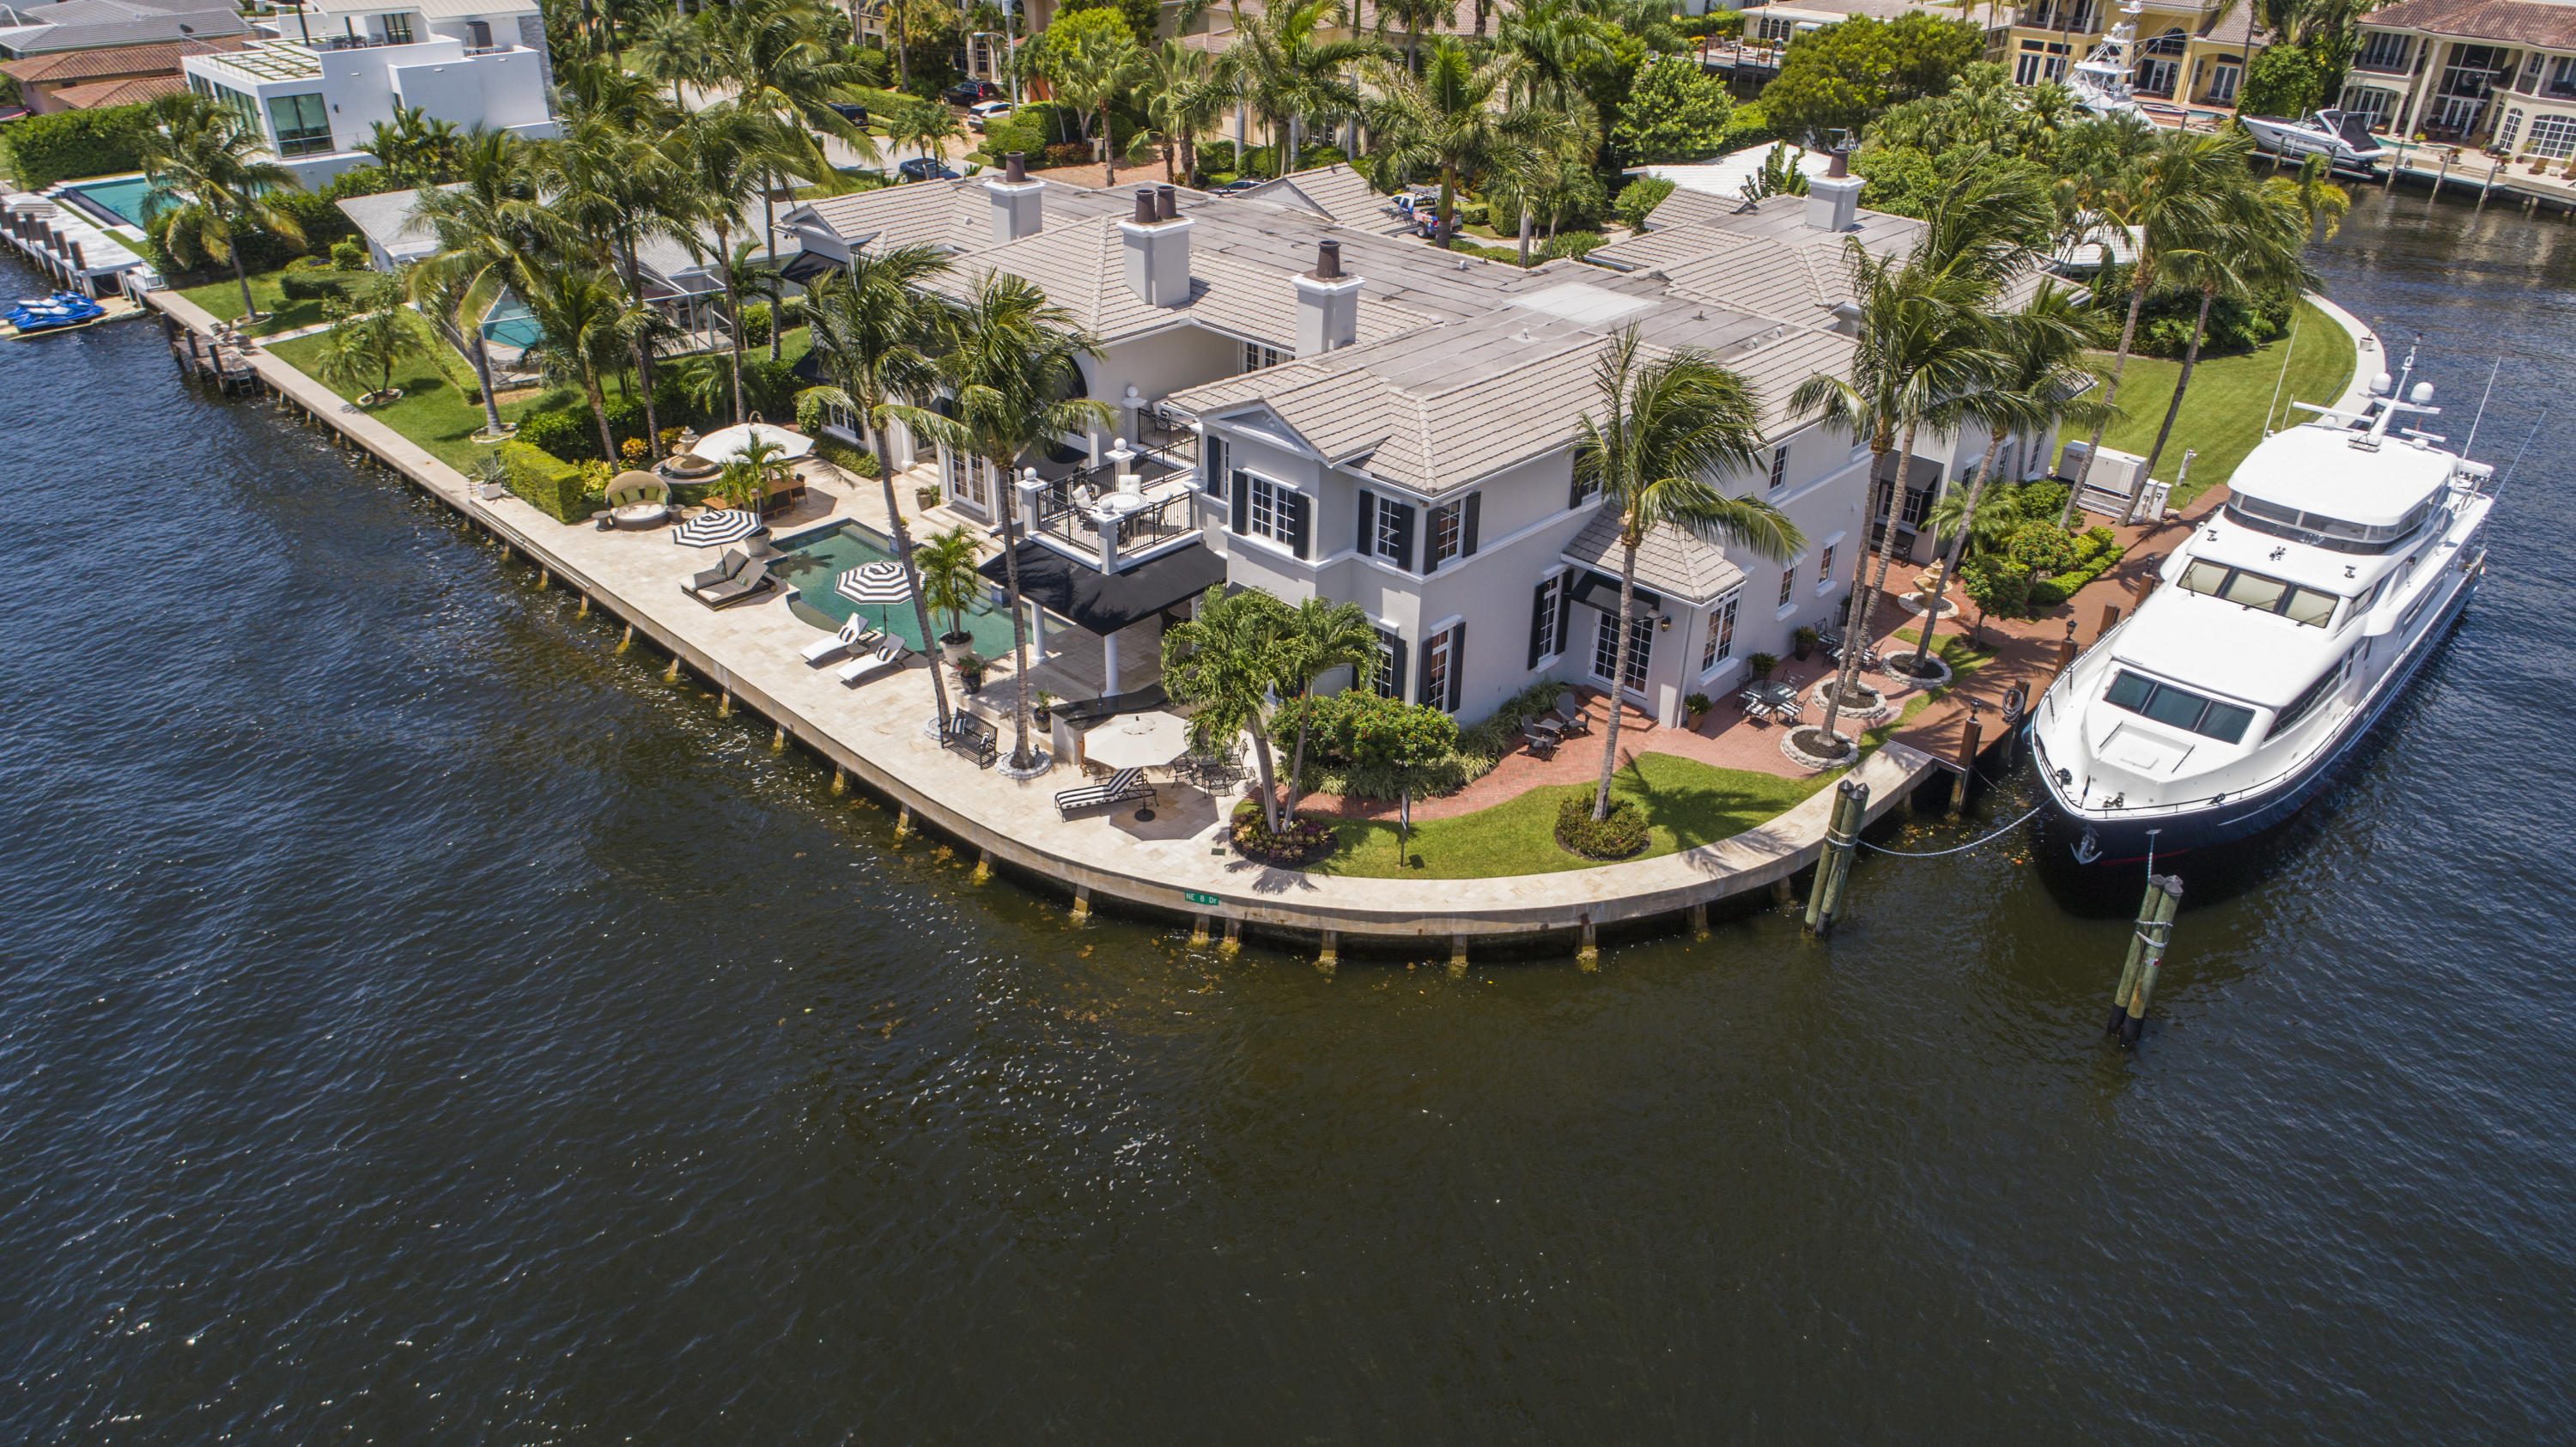 7350/7353 8th Drive, Boca Raton, Florida 33487, 6 Bedrooms Bedrooms, ,7.2 BathroomsBathrooms,Single Family,For Sale,Boca Harbour Island,8th,RX-10550818